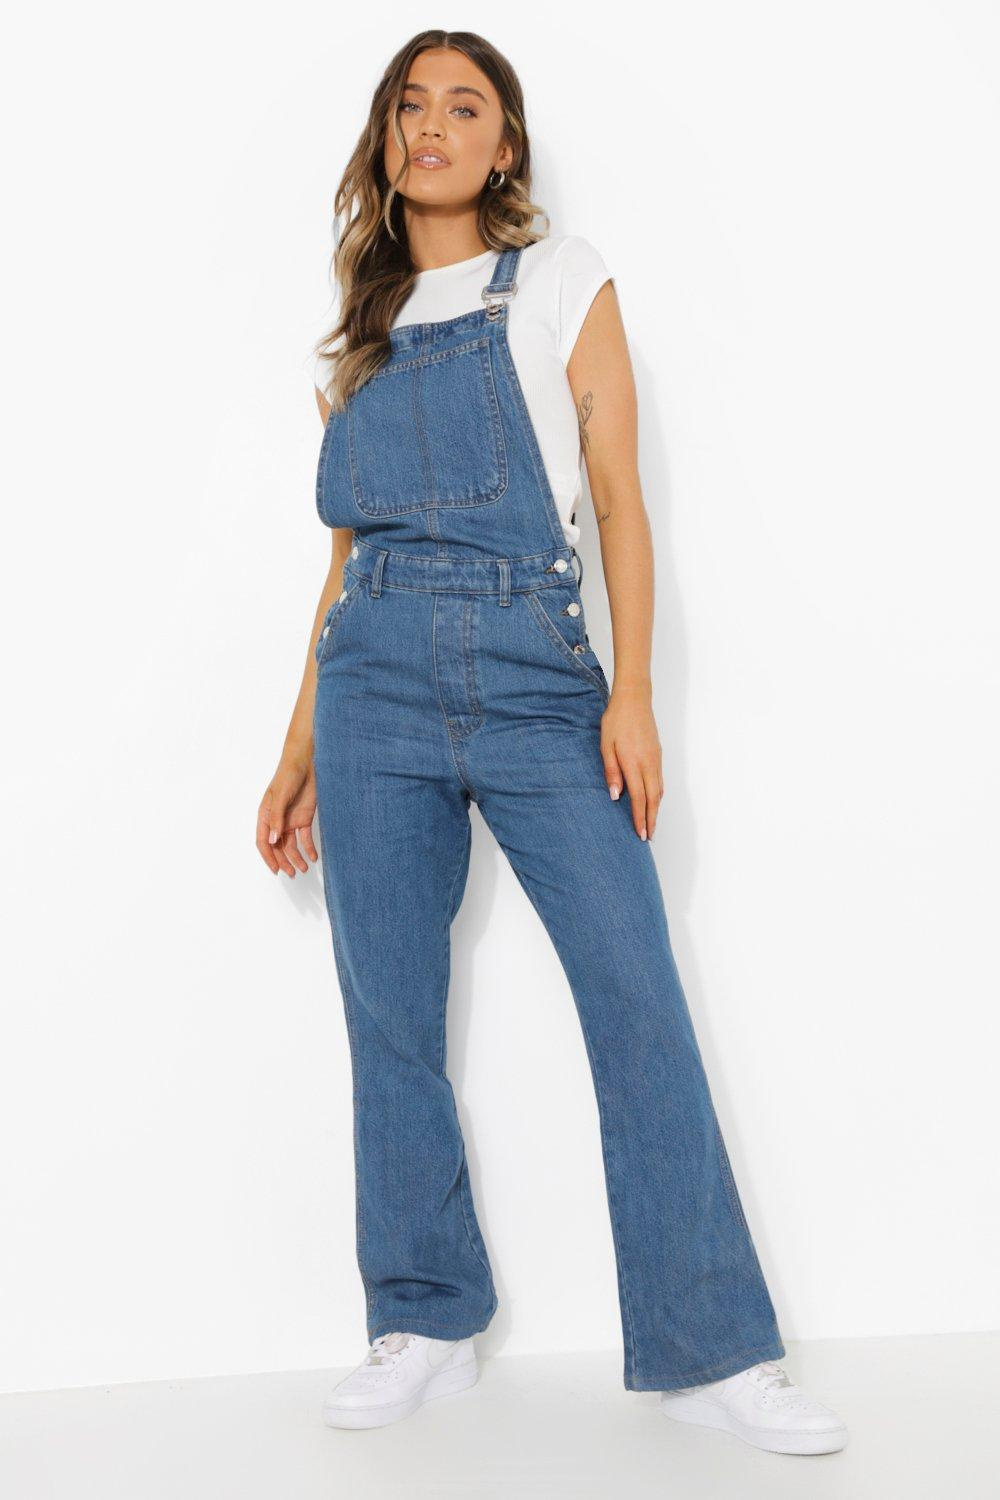 1980s Clothing, Fashion | 80s Style Clothes Womens Flared Denim Dungaree - Blue - 12 $24.00 AT vintagedancer.com